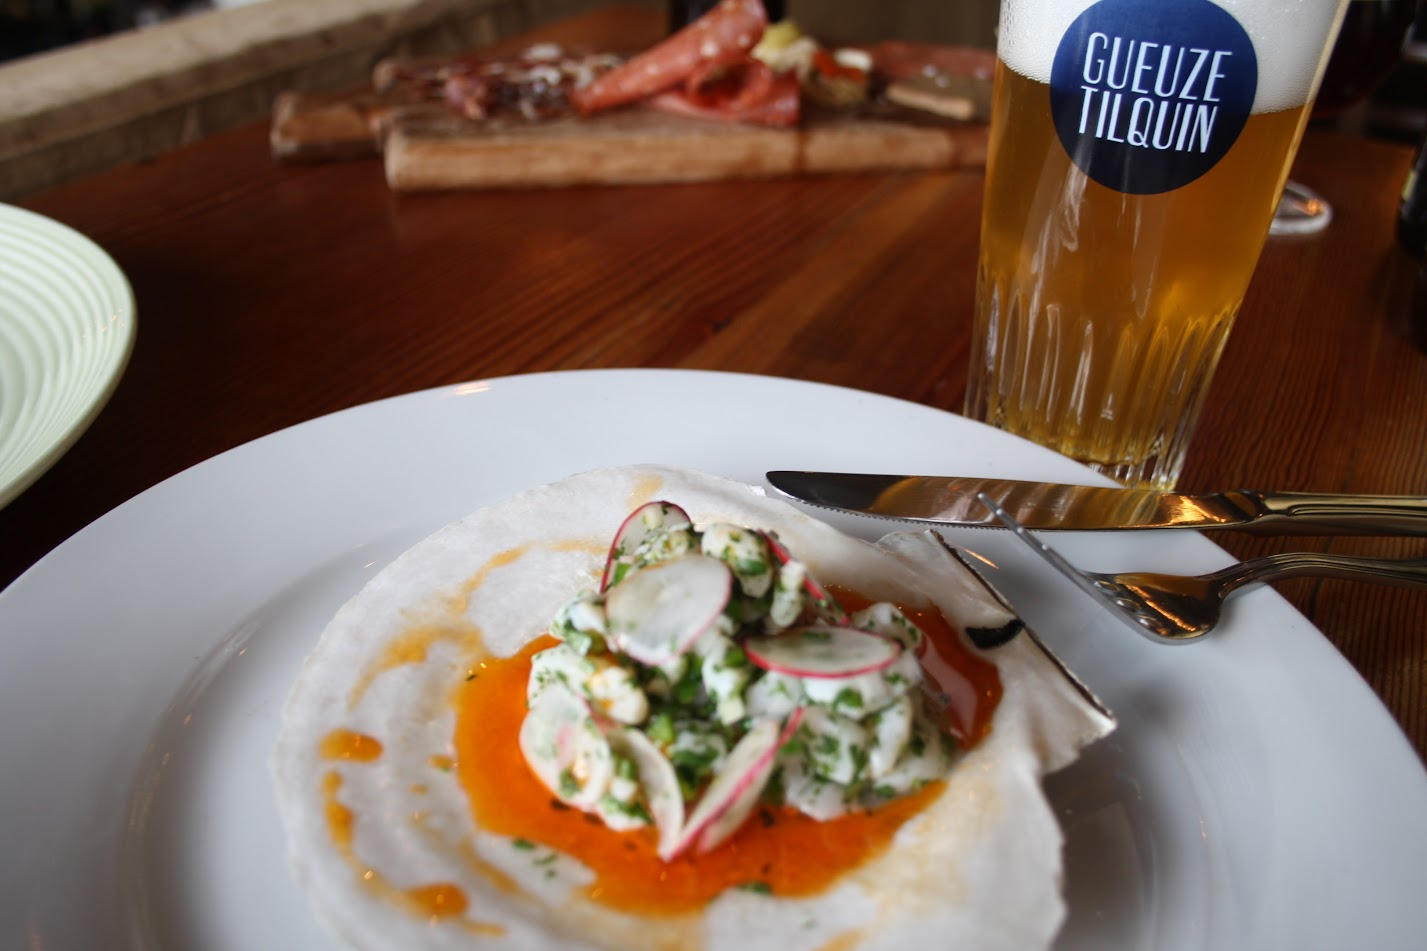 Imperial Session Beer Dinner Series, this pop up offers guests the ability to experience a wide range of beer and food interactions without boundaries of a single brewery or single restaurant